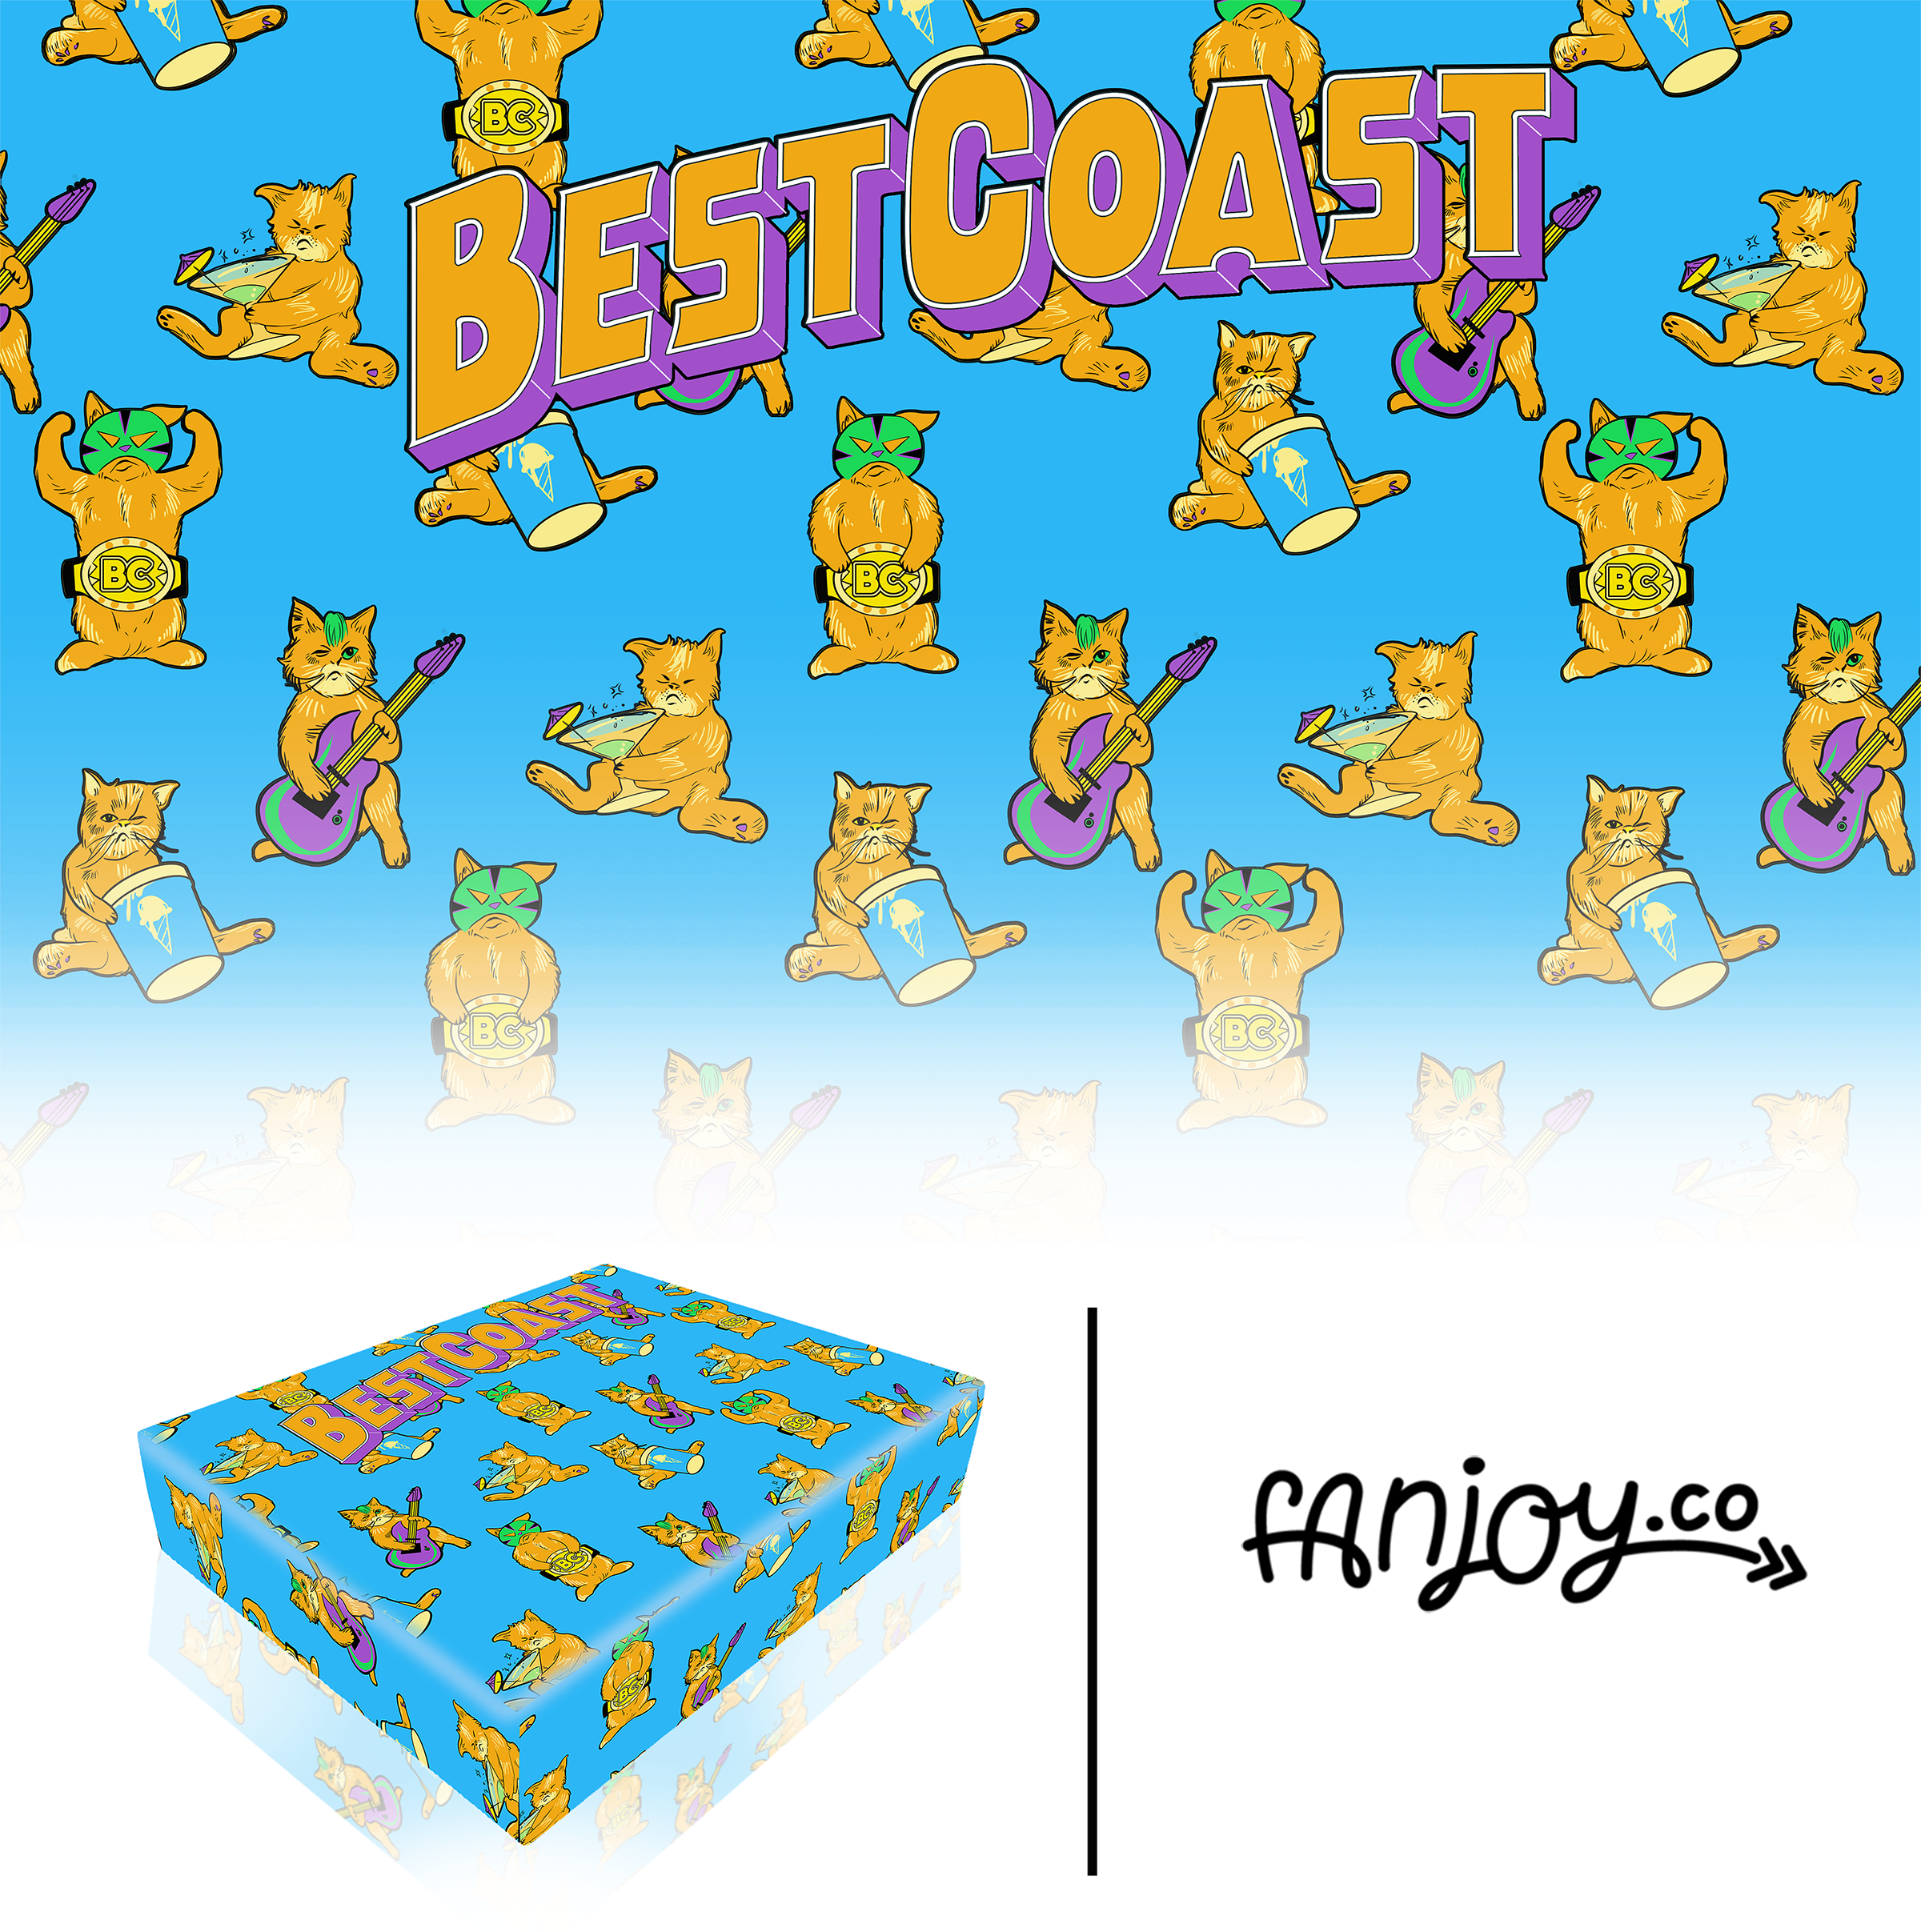 Best Coast Box Cover